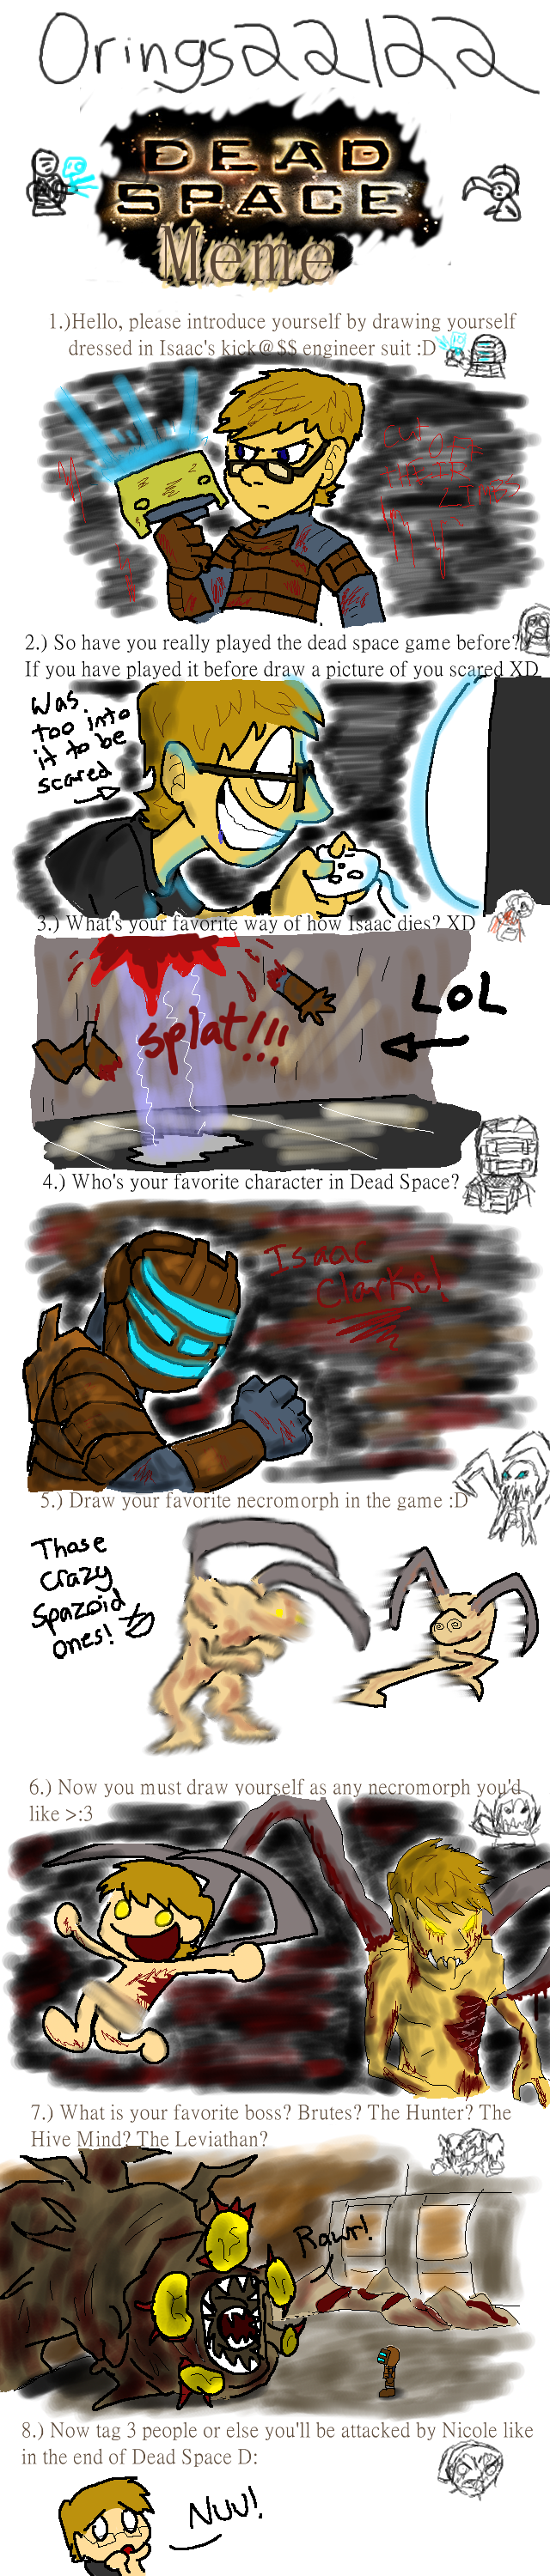 dead_space_meme_by_jurassiczalar d3bfnfd dead space meme by jurassiczalar on deviantart